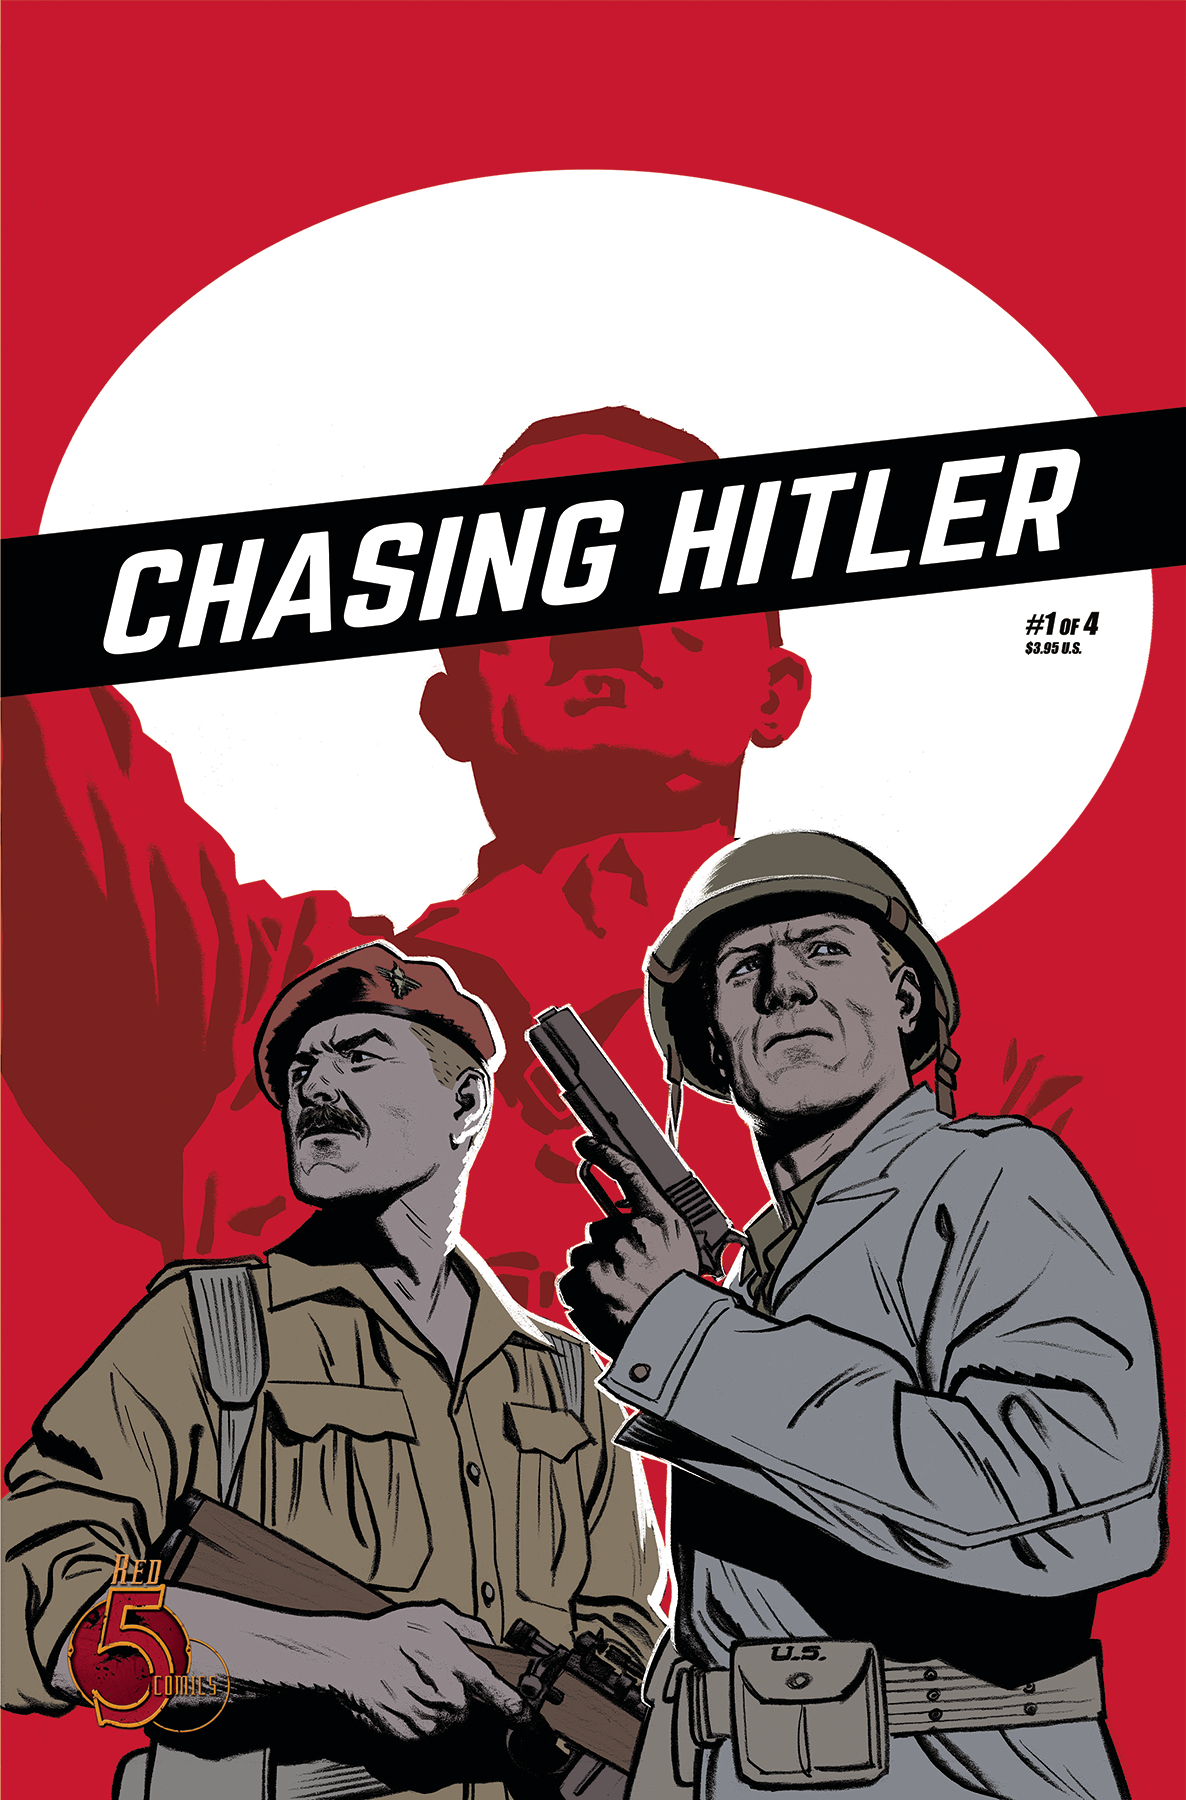 CHASING HITLER #1 (OF 4)